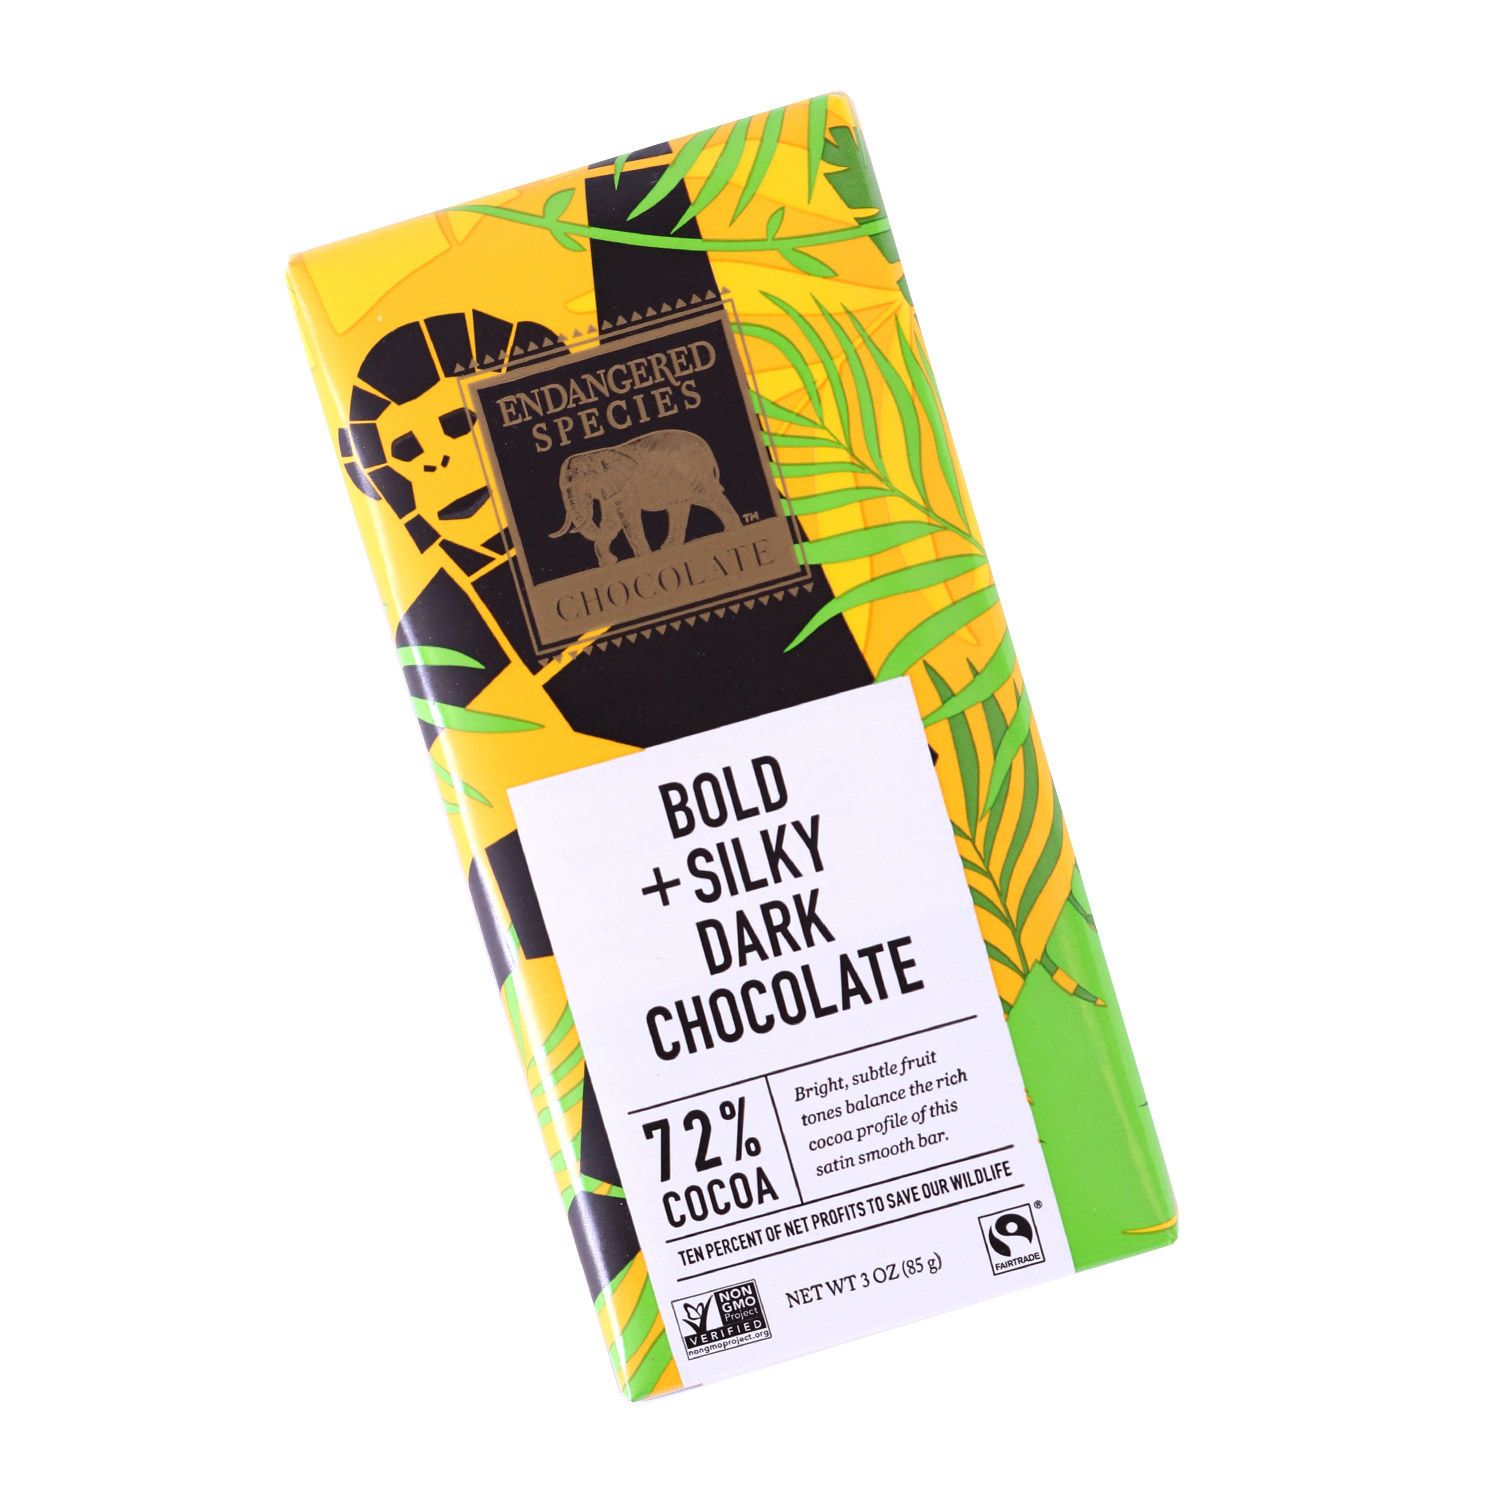 Dark Chocolate, Bold & Silk - 72% Cocoa